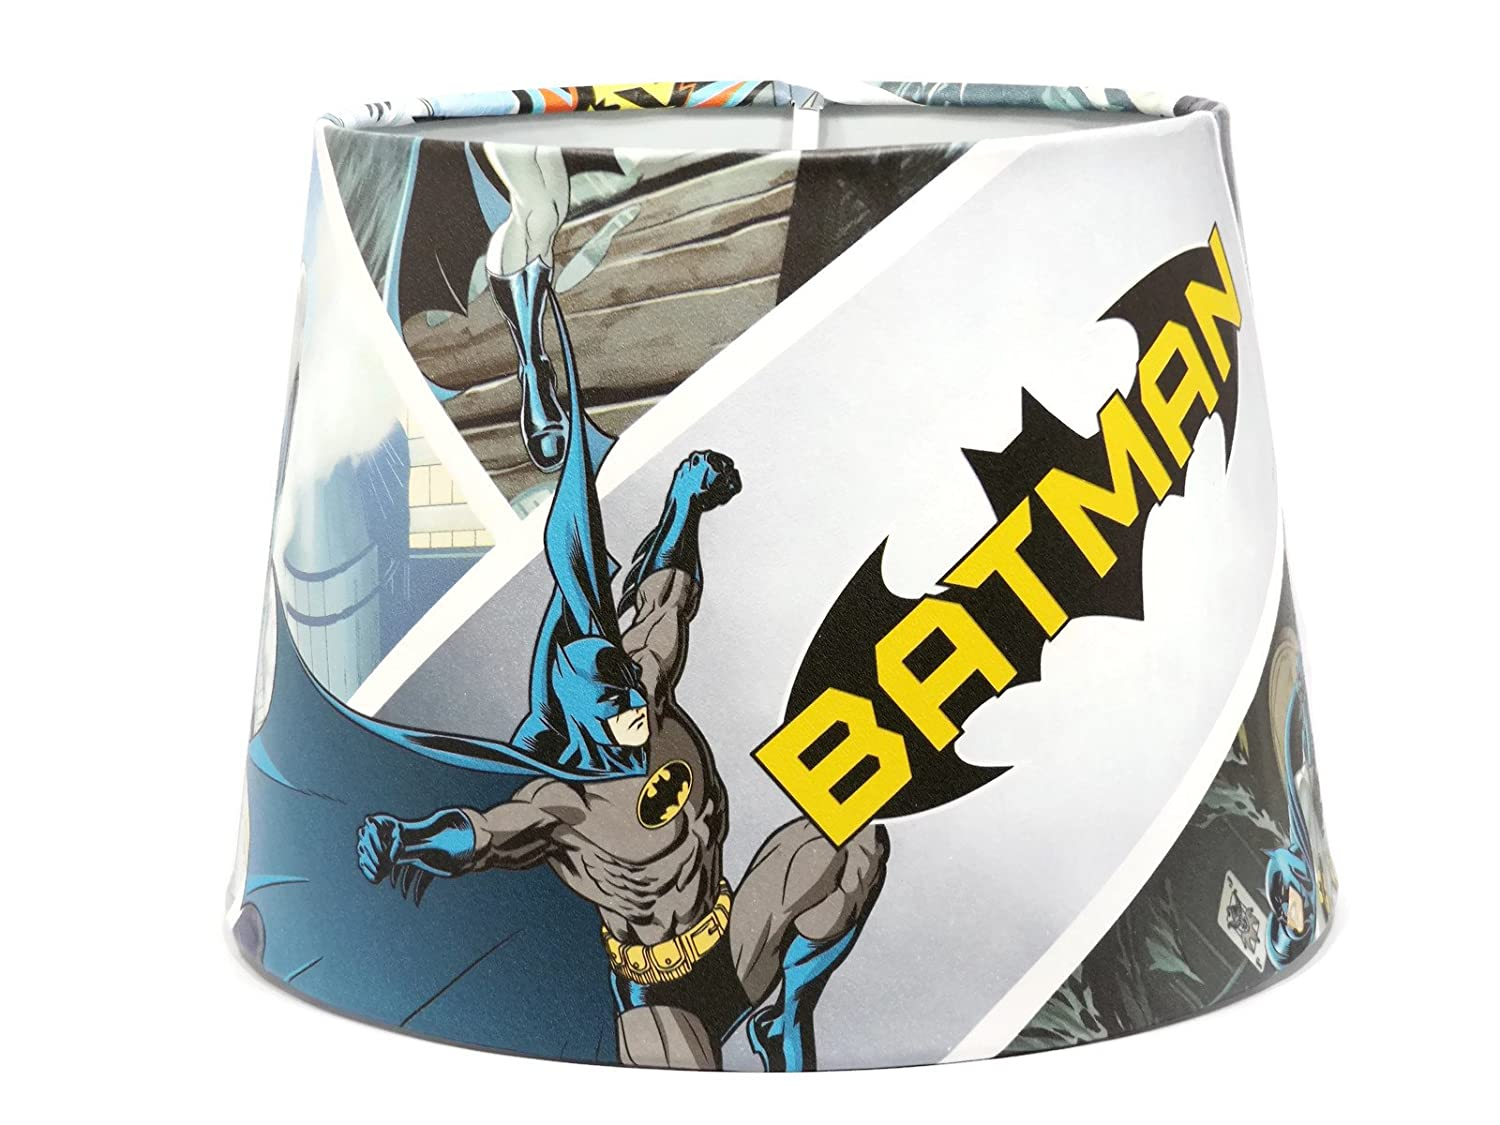 Premier Lampshades Ceiling Batman Childrens Lamp Shades 8 Inch Marvel Boys Lampshade Light Shade Joker Penguin Bedroom Accessories Gifts Comic 95